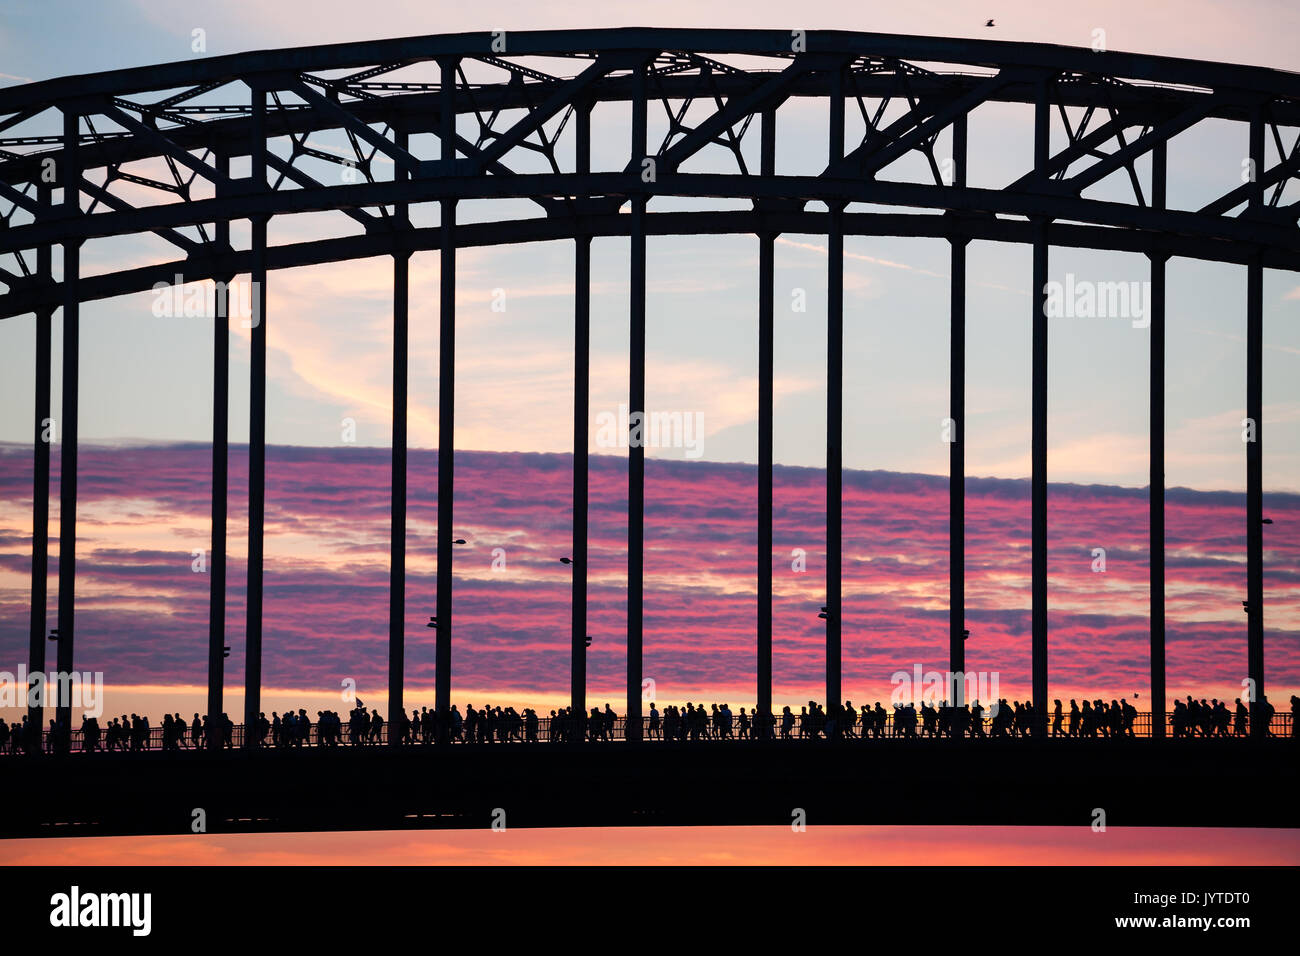 Participants of the 101st annual International Four Days Marches cross the Waalbrug in Nijmegen at sunrise - Stock Image